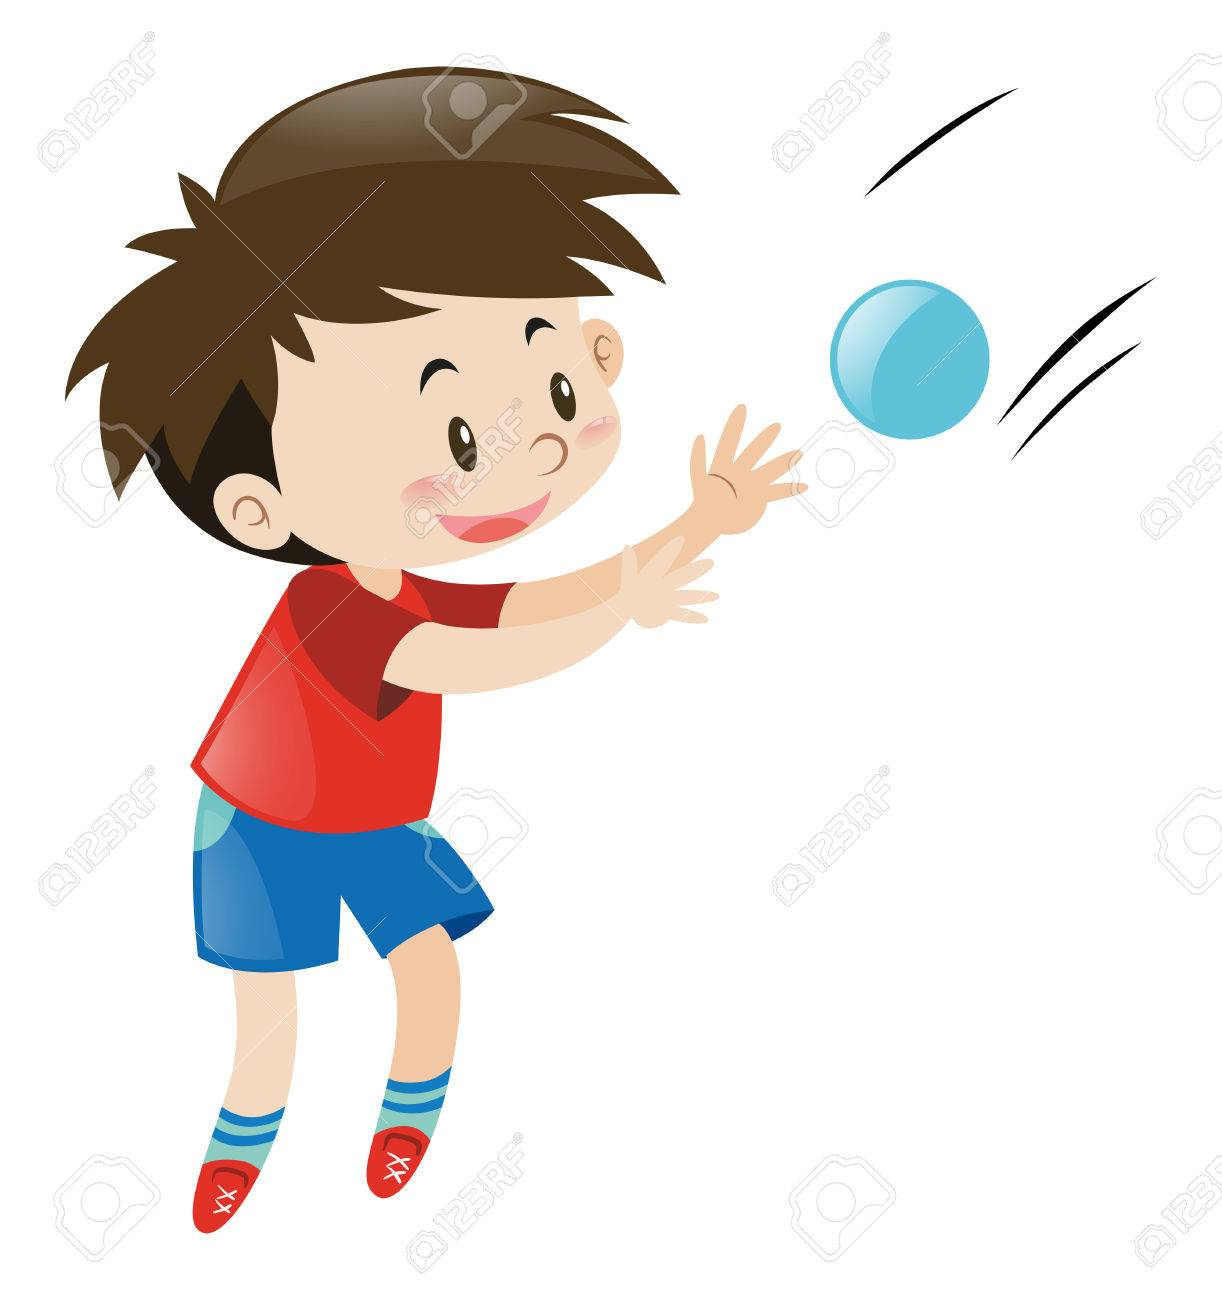 Kid Throwing Ball Clipart.